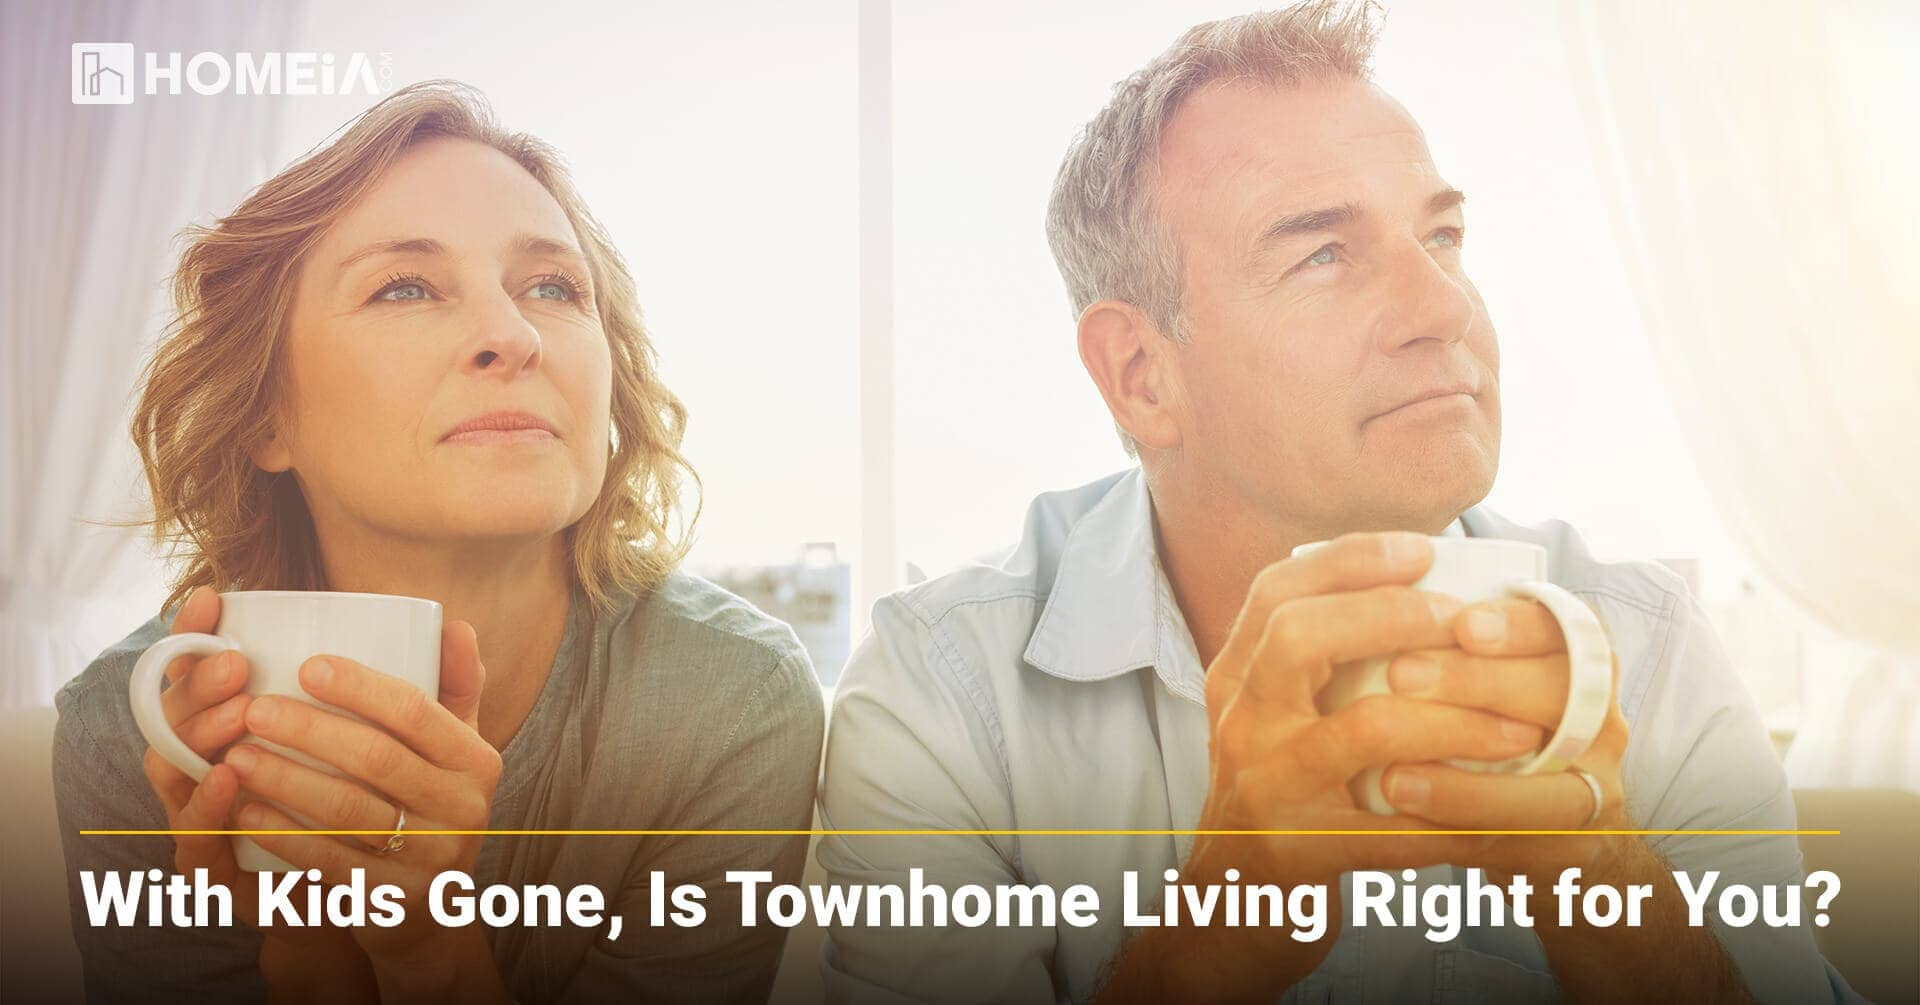 With Kids Gone, Is Townhome Living Right for You?